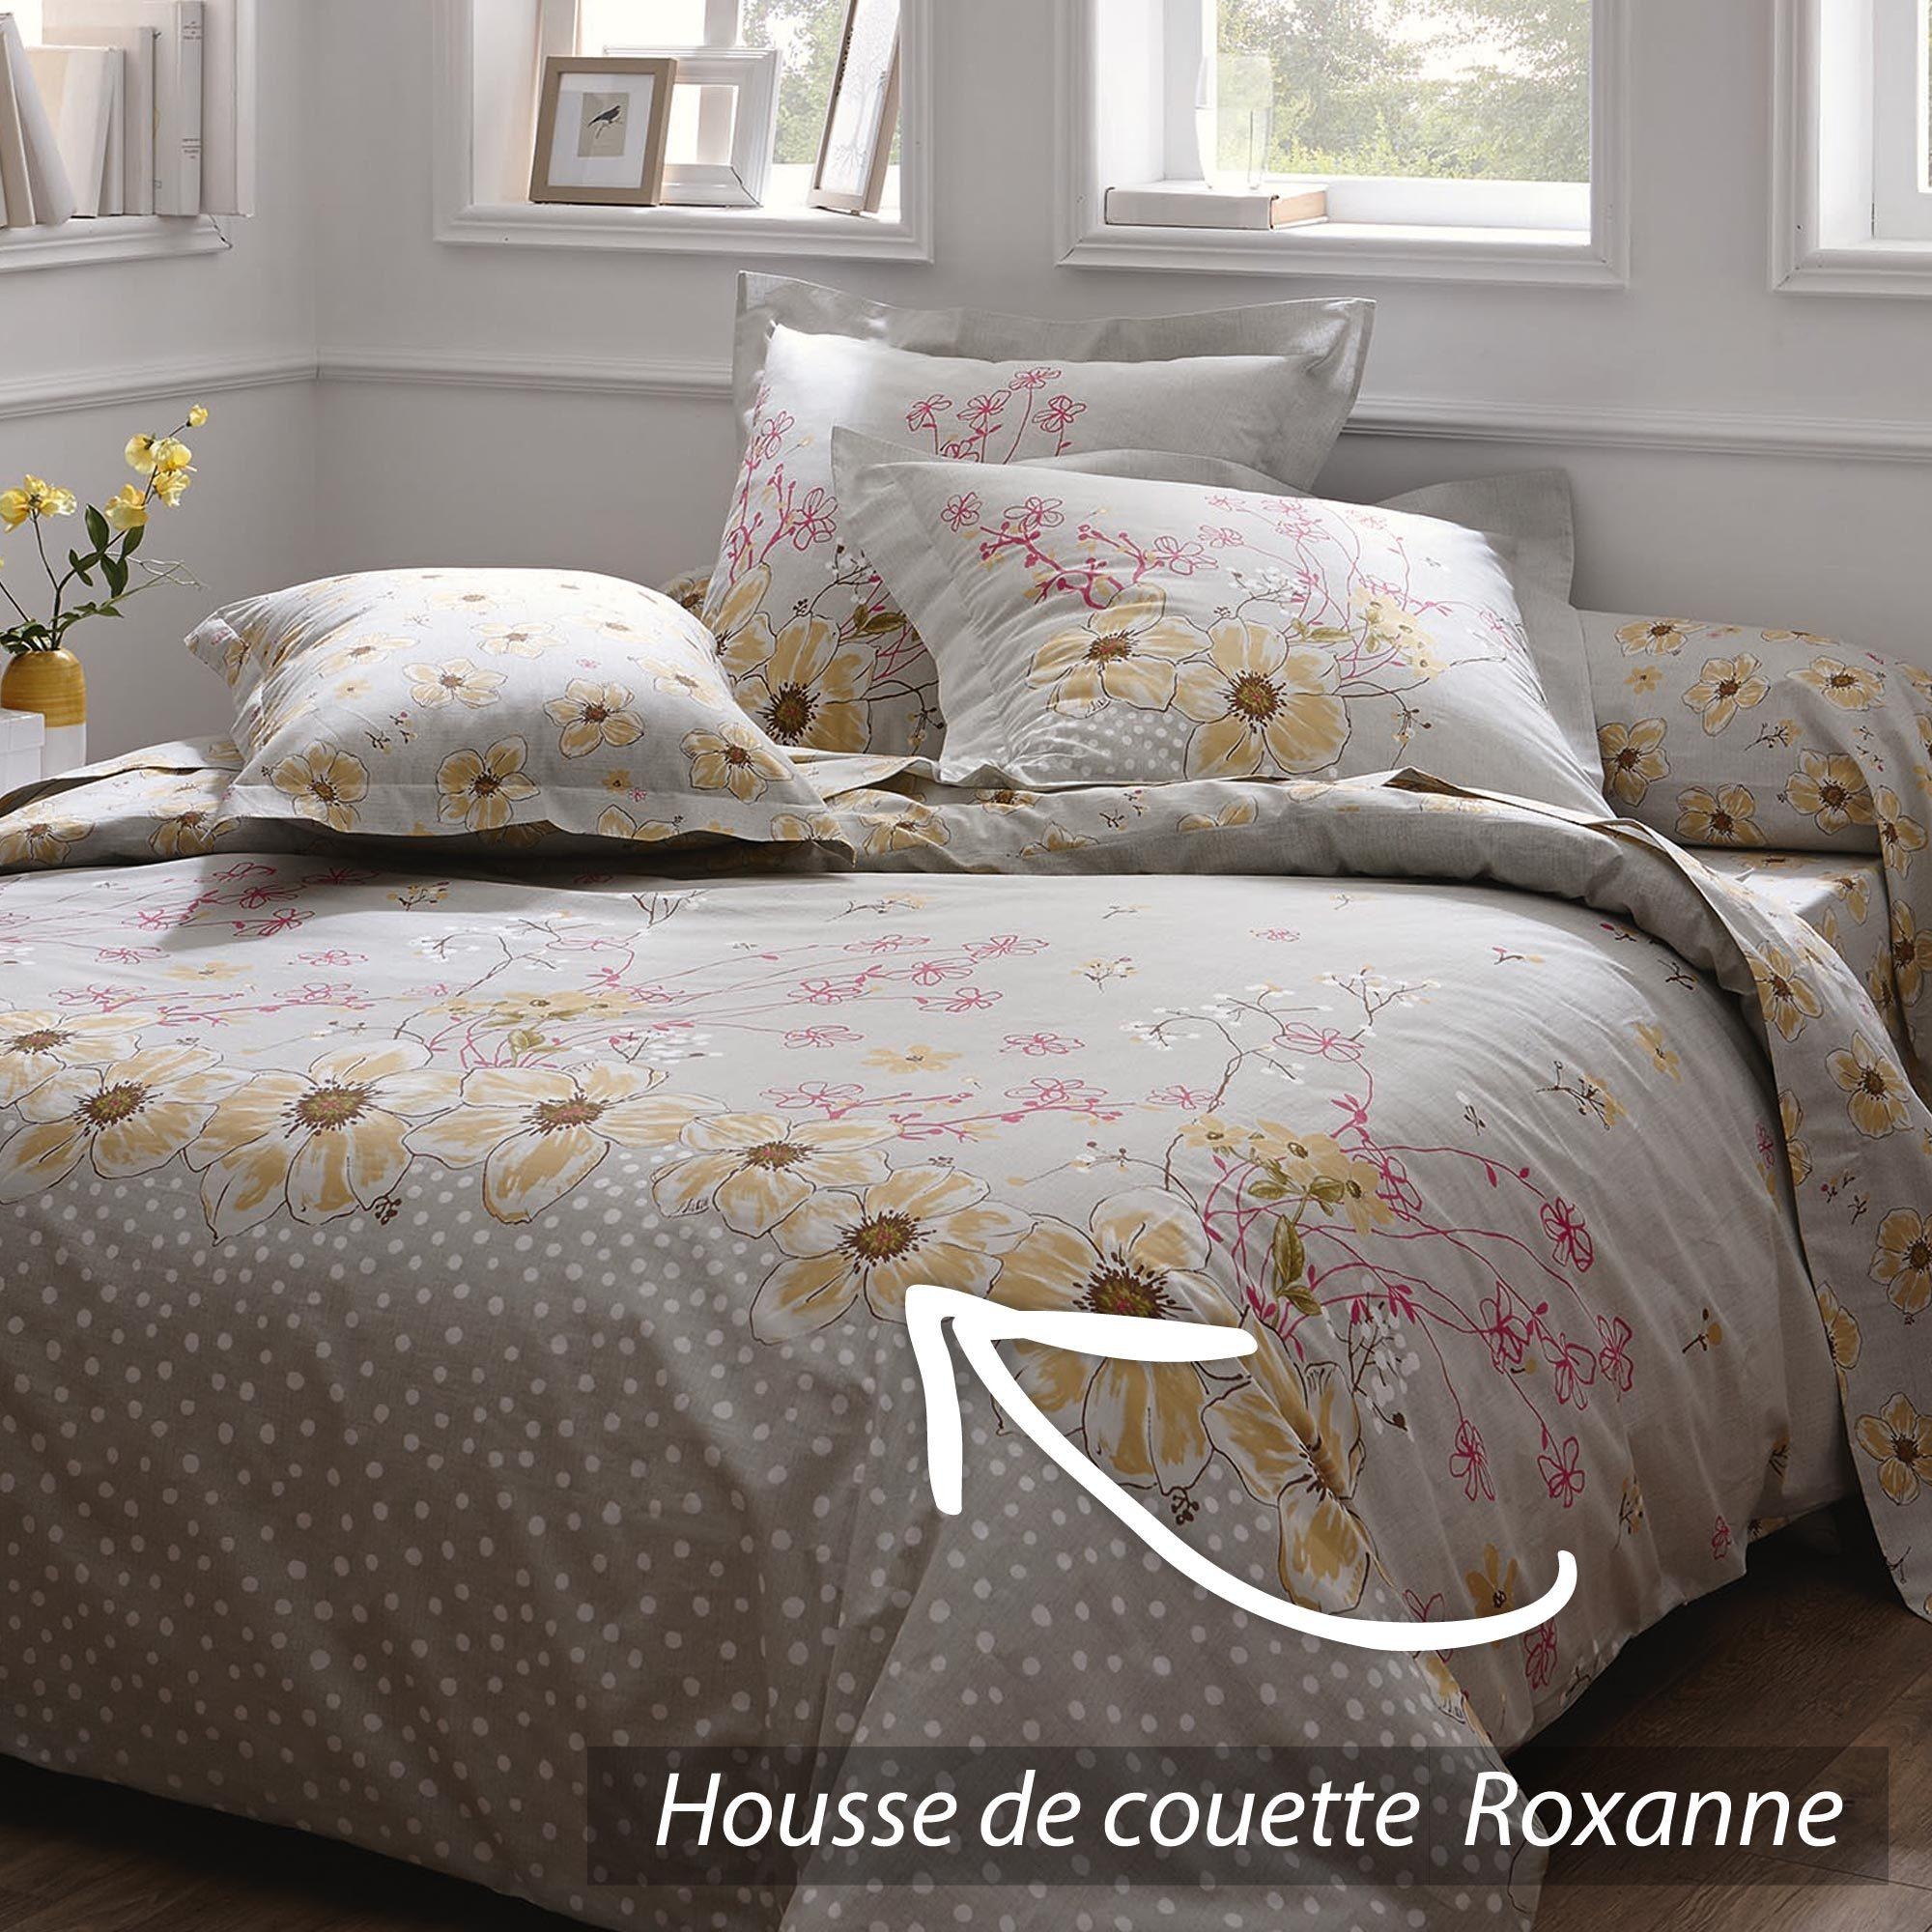 housse couette 200x200 28 images housse de couette fille 200x200 reverba housse de couette. Black Bedroom Furniture Sets. Home Design Ideas